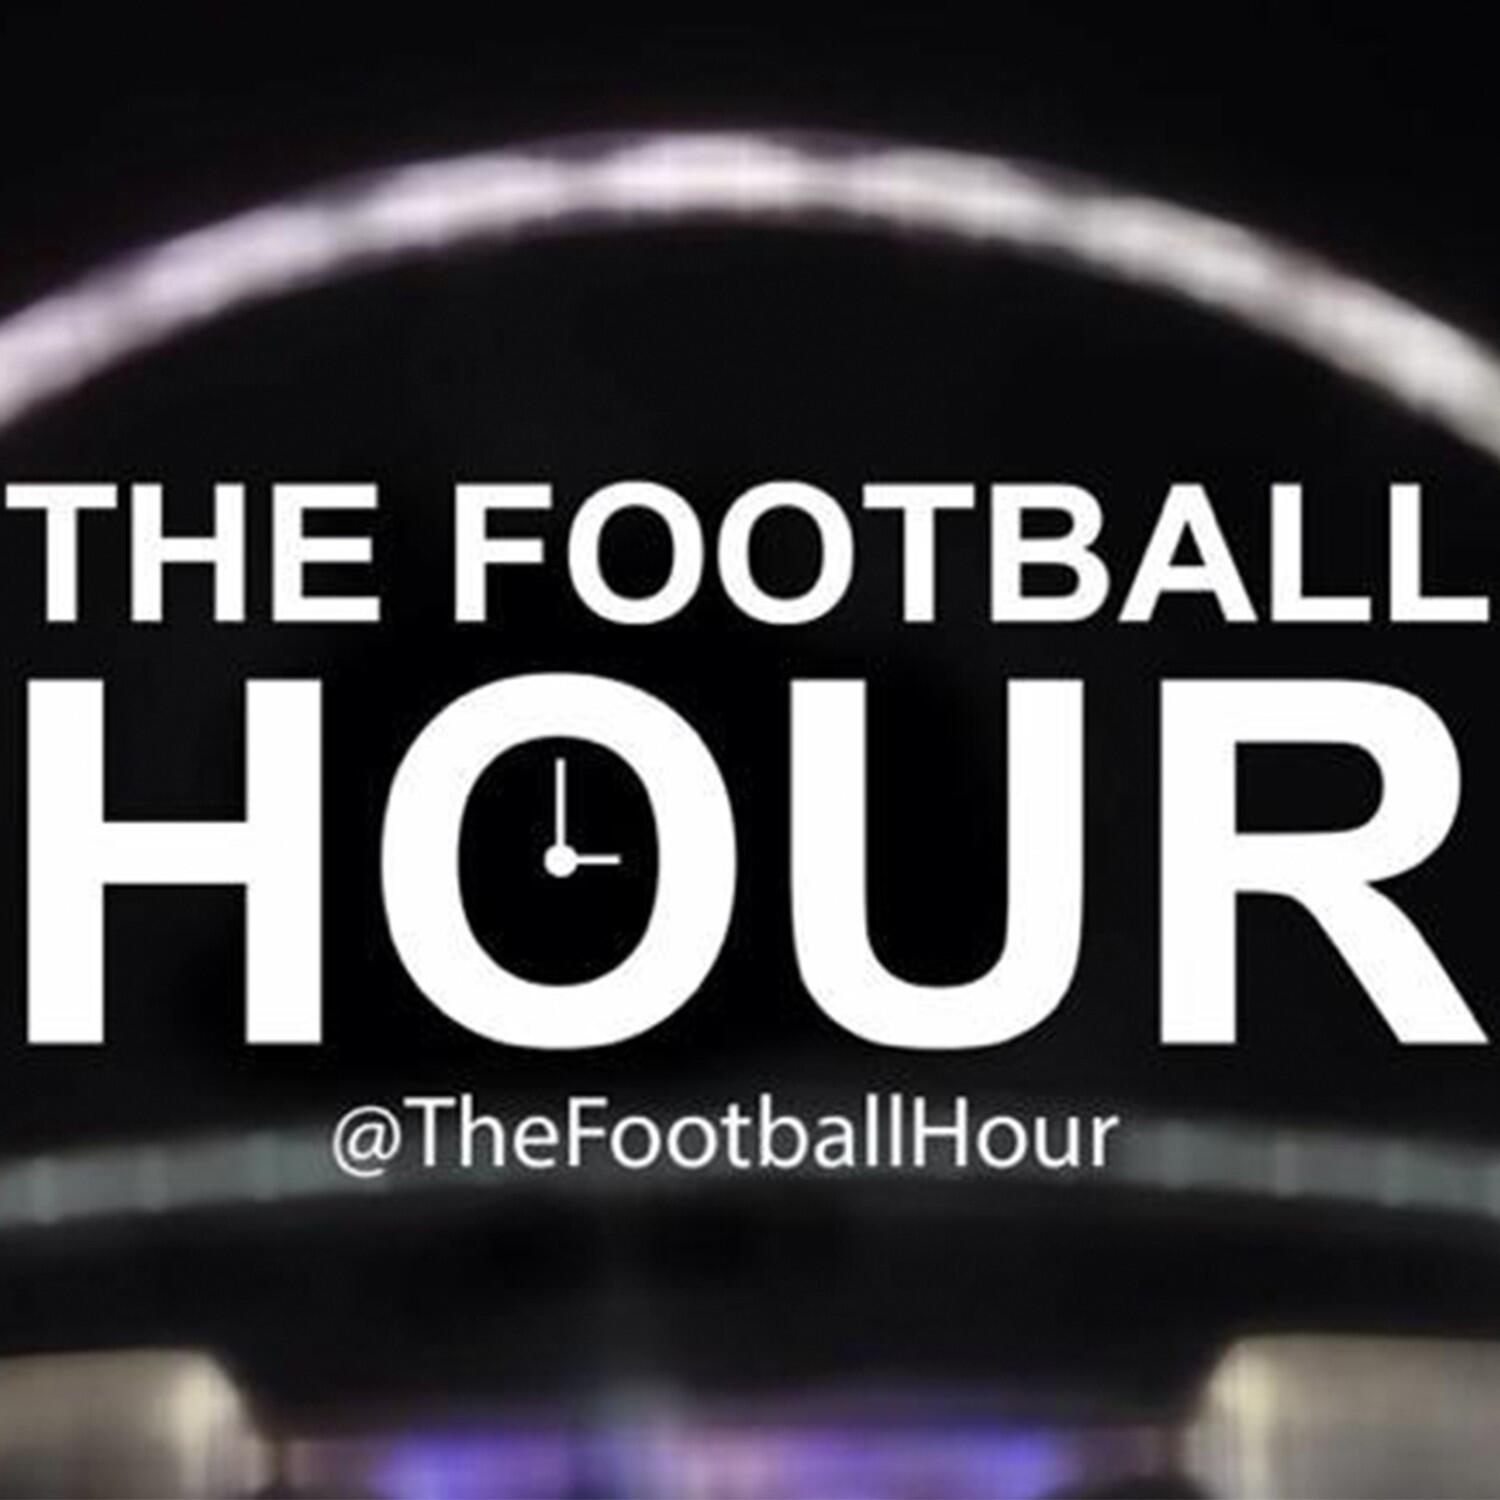 birmingham nottm forest sofascore sofa factory shops uk the football hour by on apple podcasts